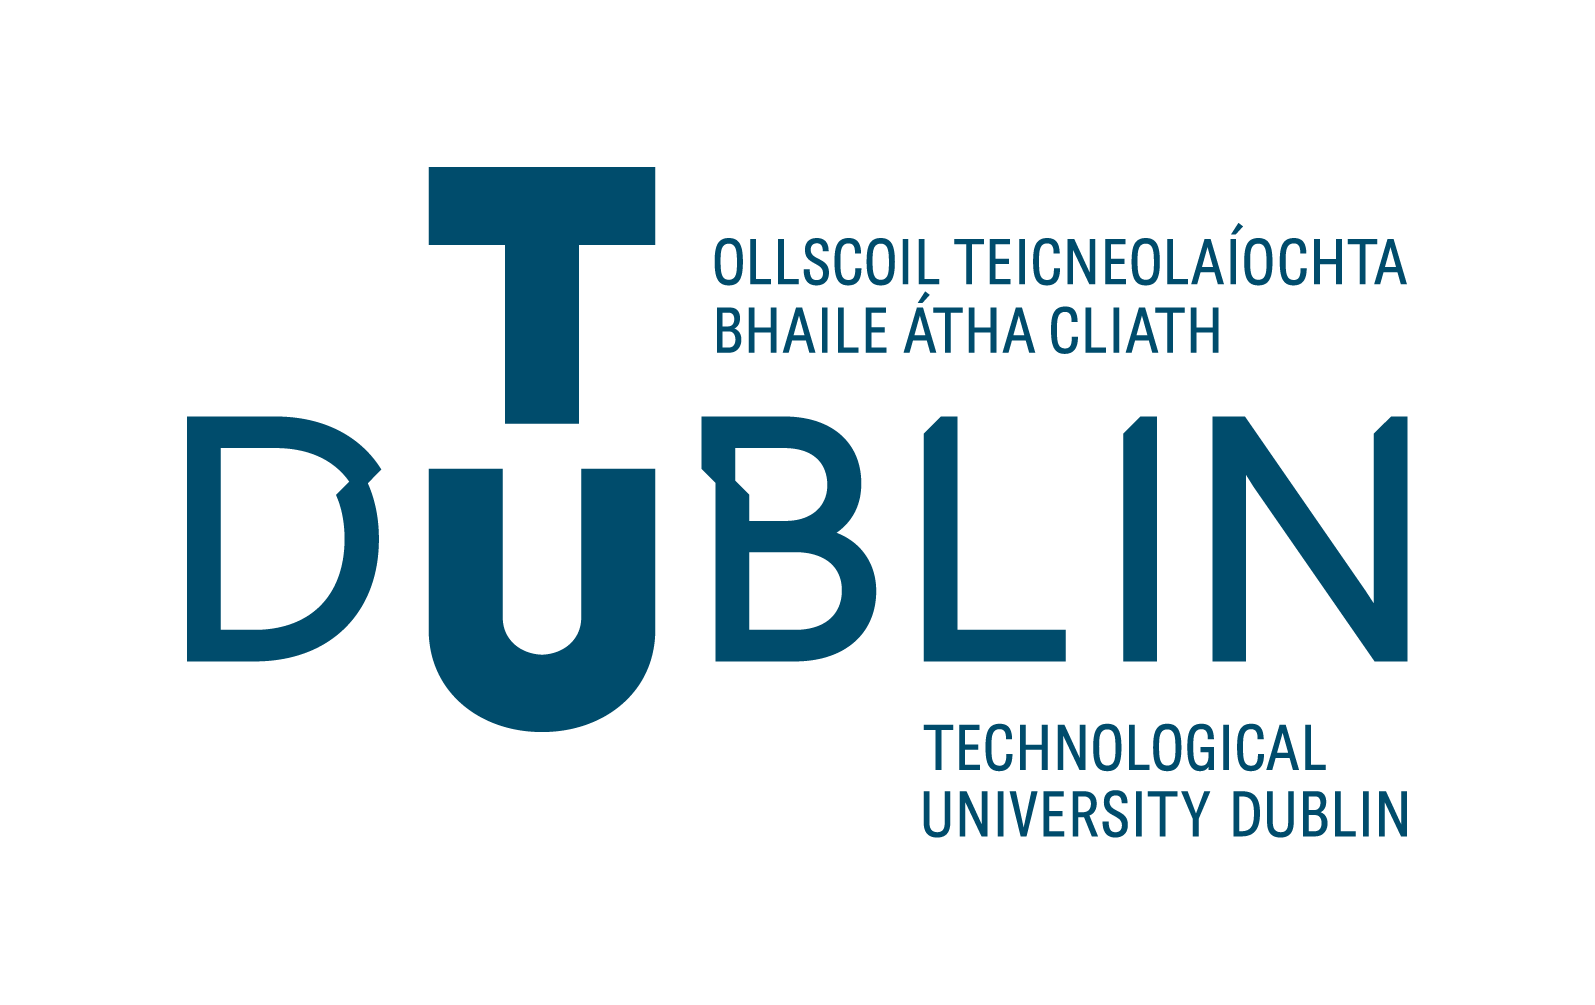 Technology University Dublin logo